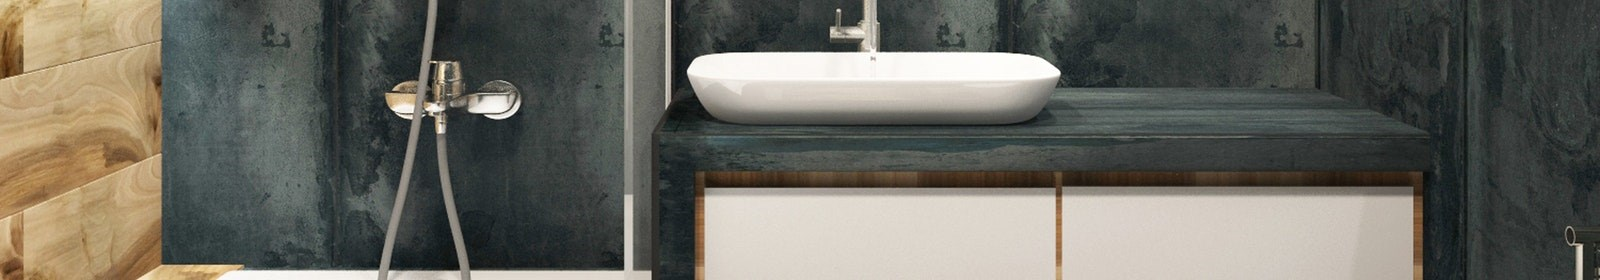 Compact storage spaces for bathrooms